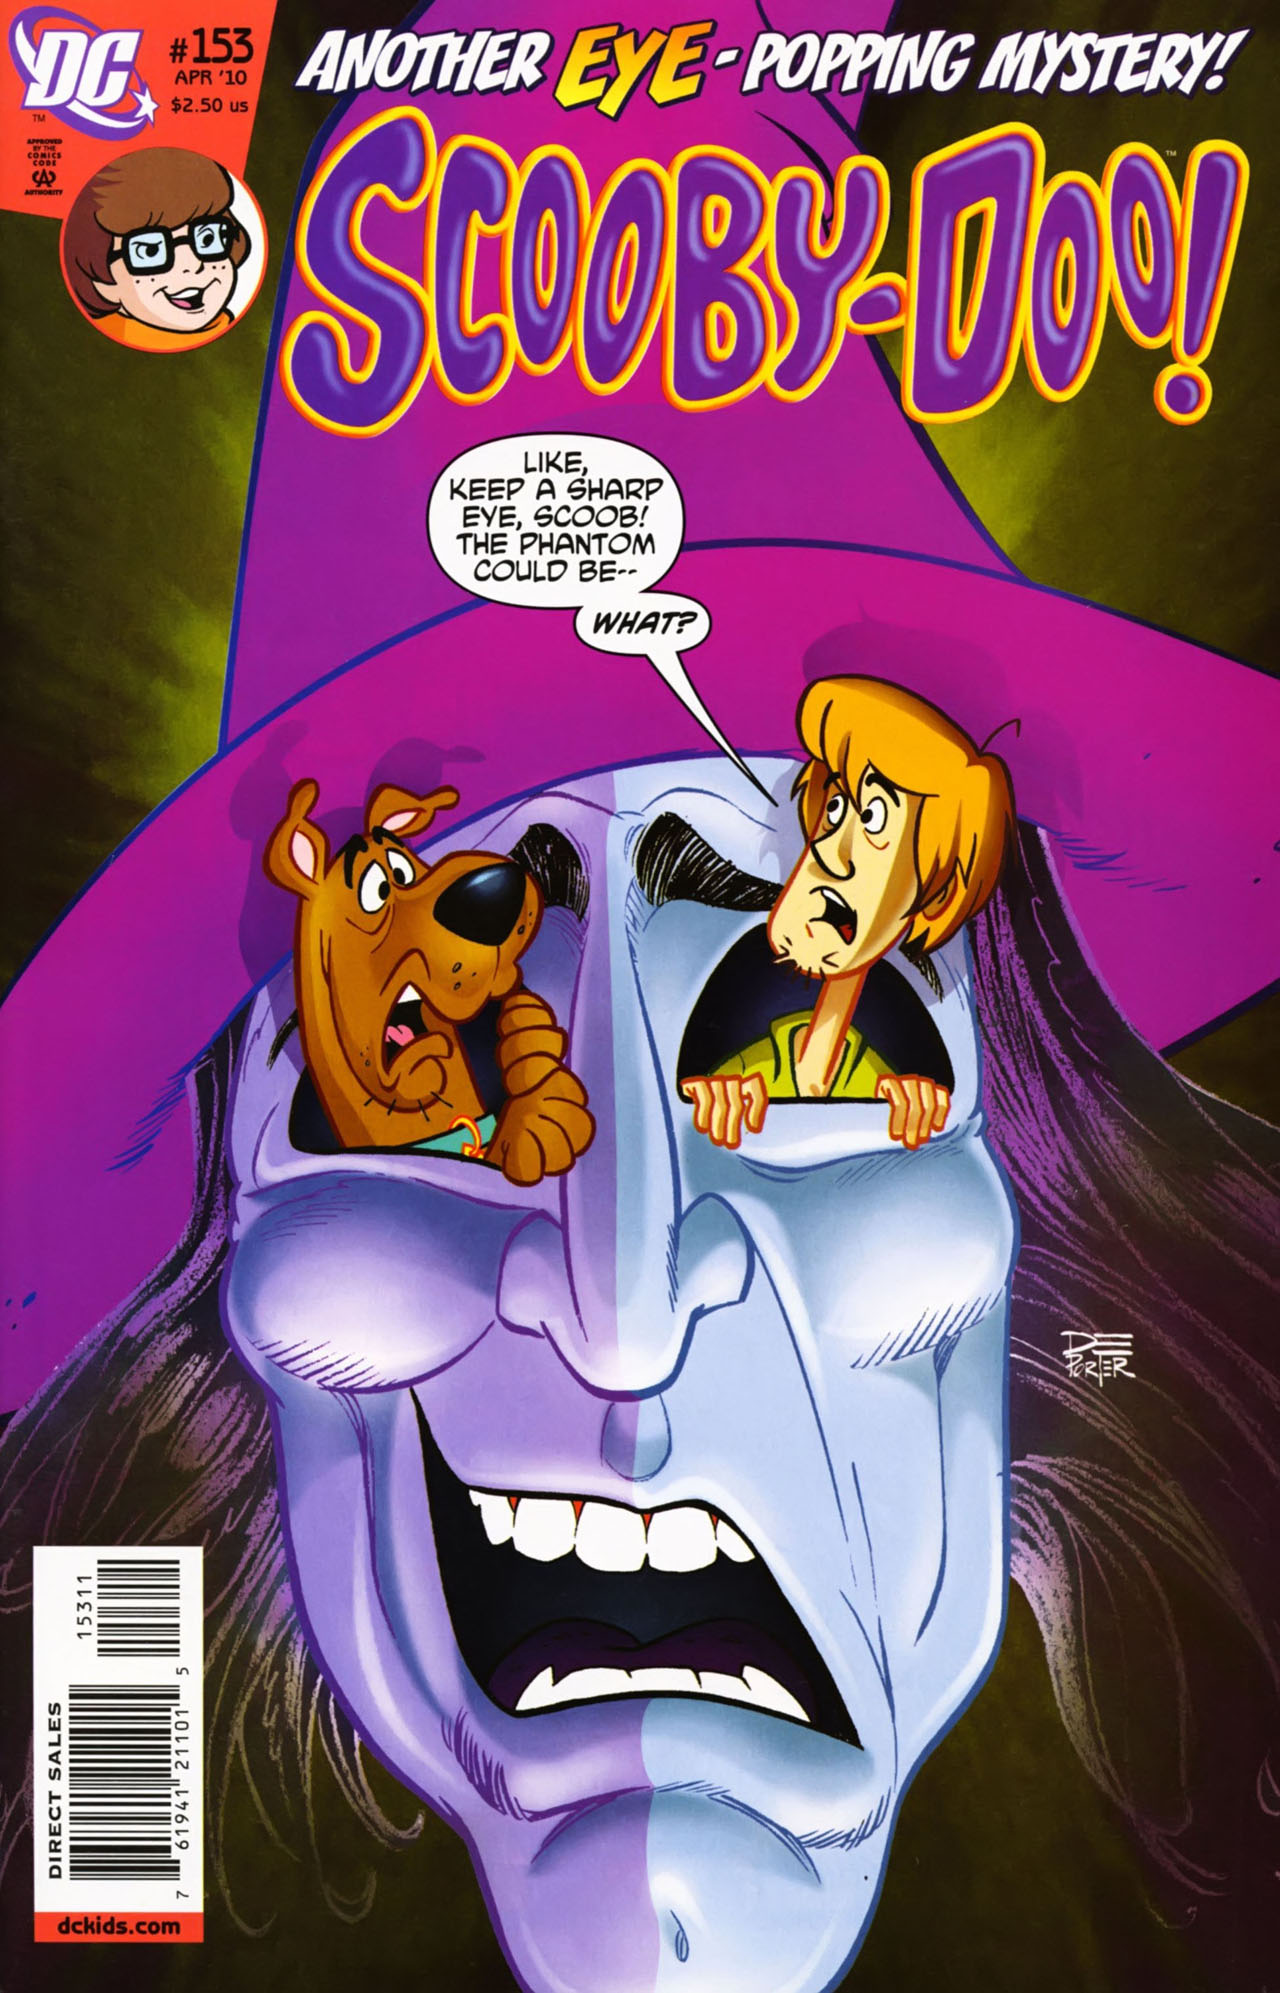 Read online Scooby-Doo (1997) comic -  Issue #153 - 1